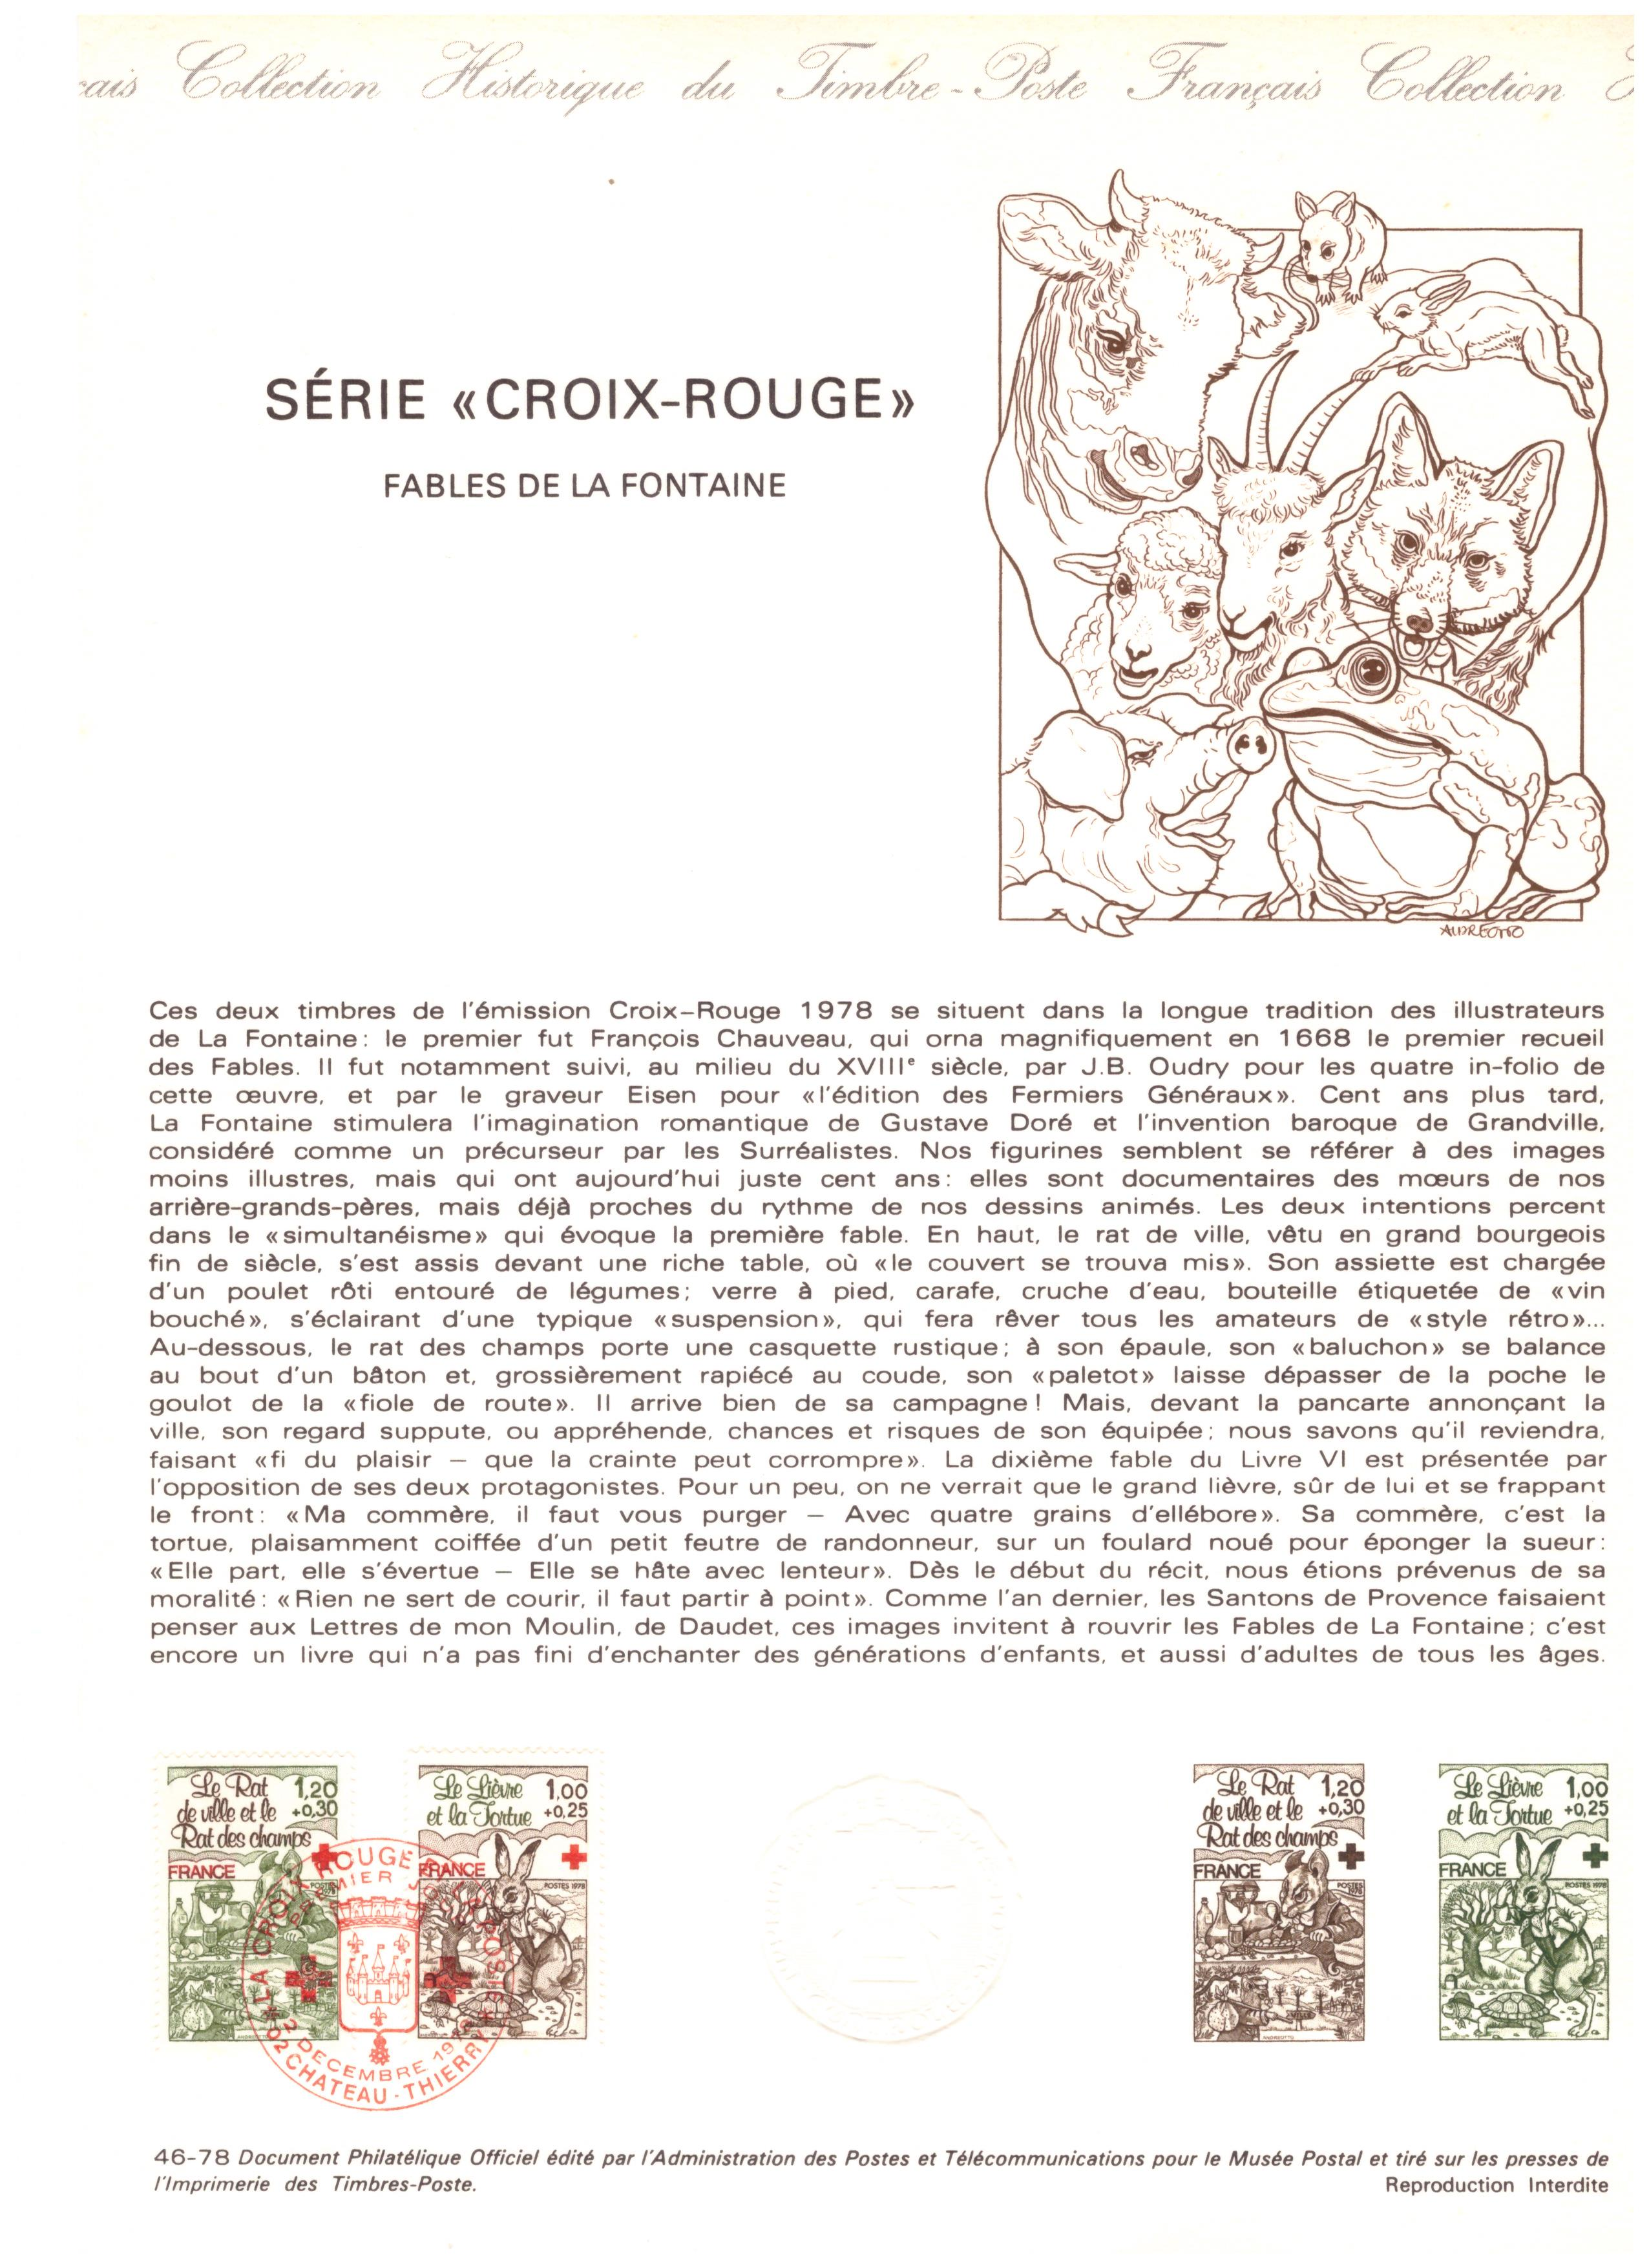 document_philatelique_officiel_1978.jpg